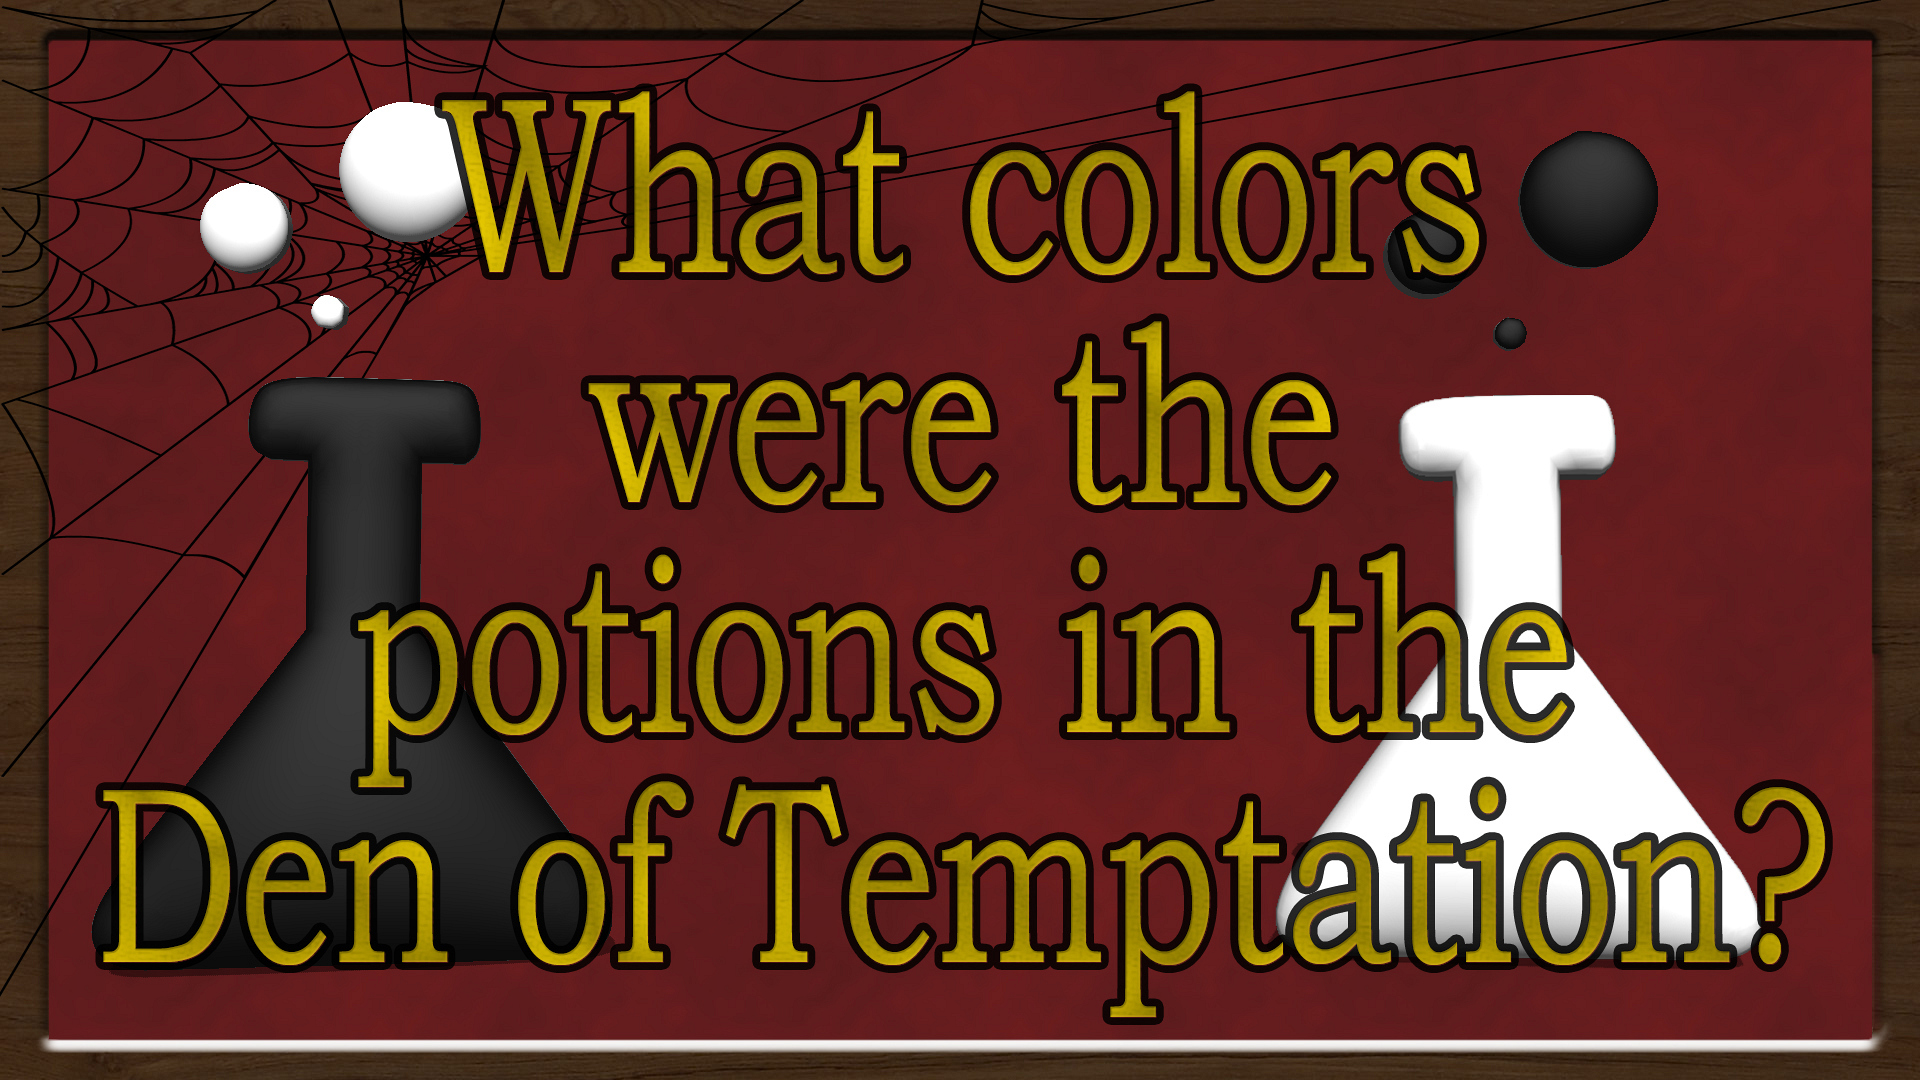 What colors were the potions in the Den of Temptation?